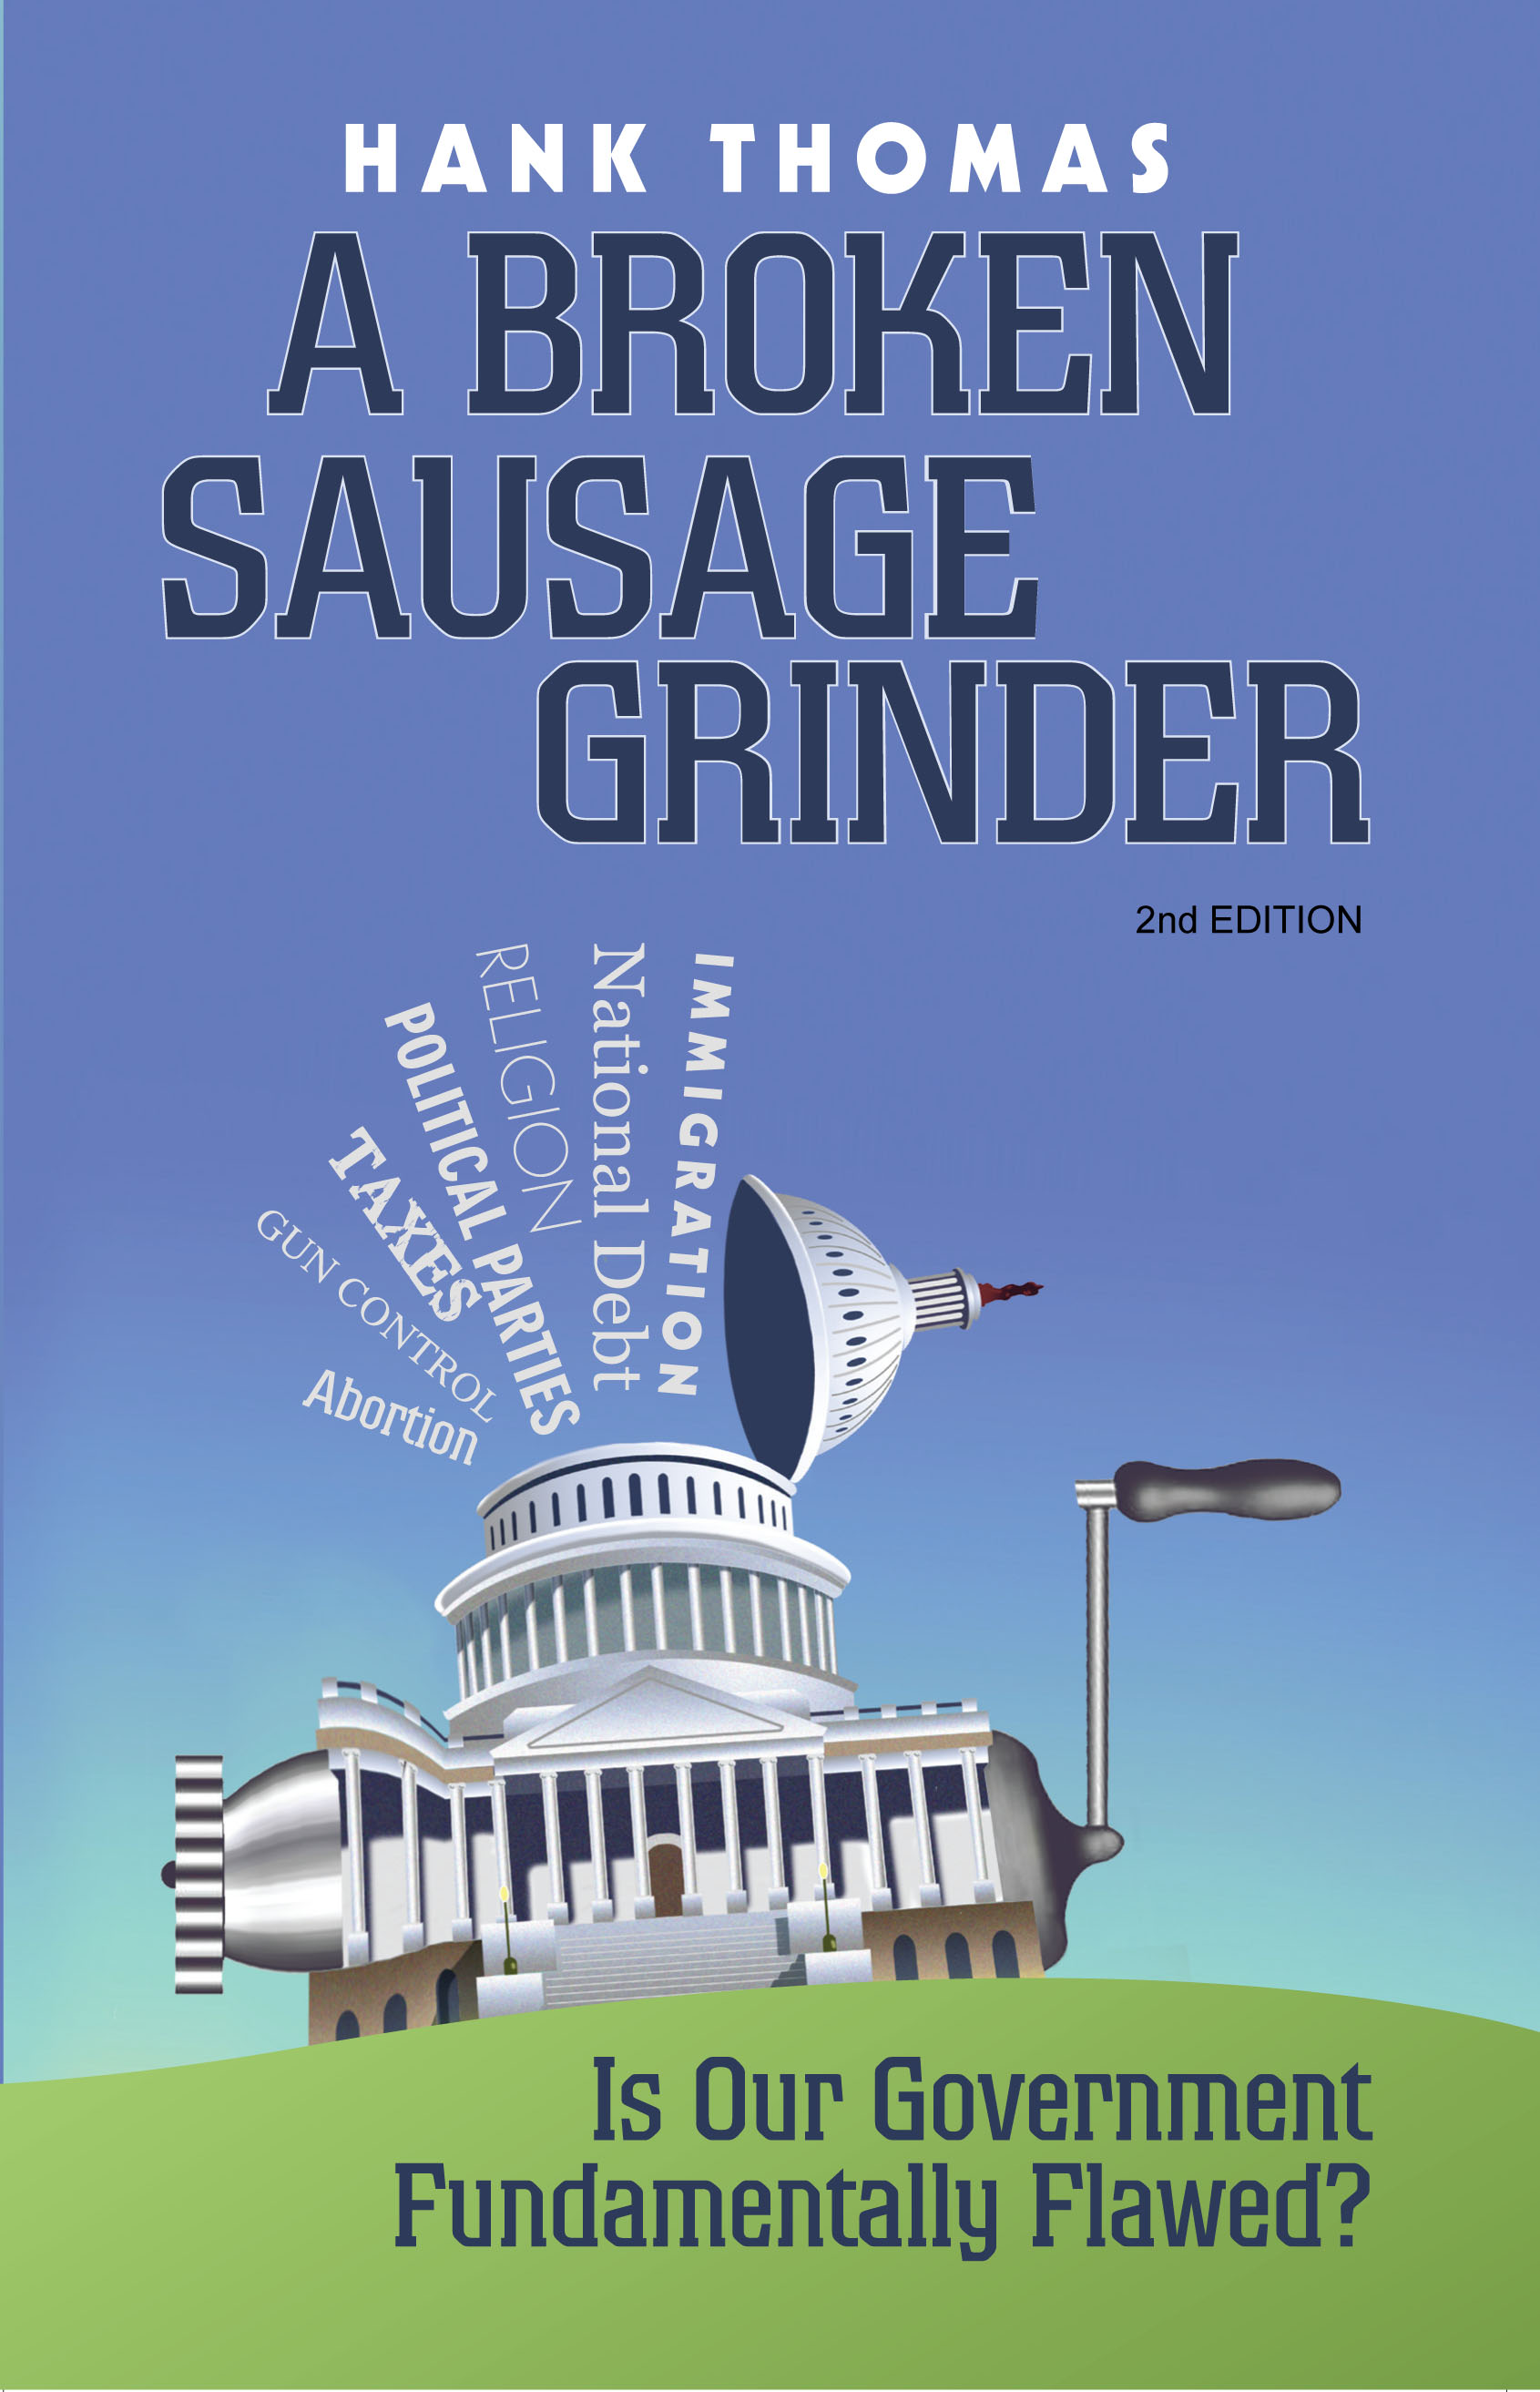 A Broken Sausage Grinder (2nd Edition)